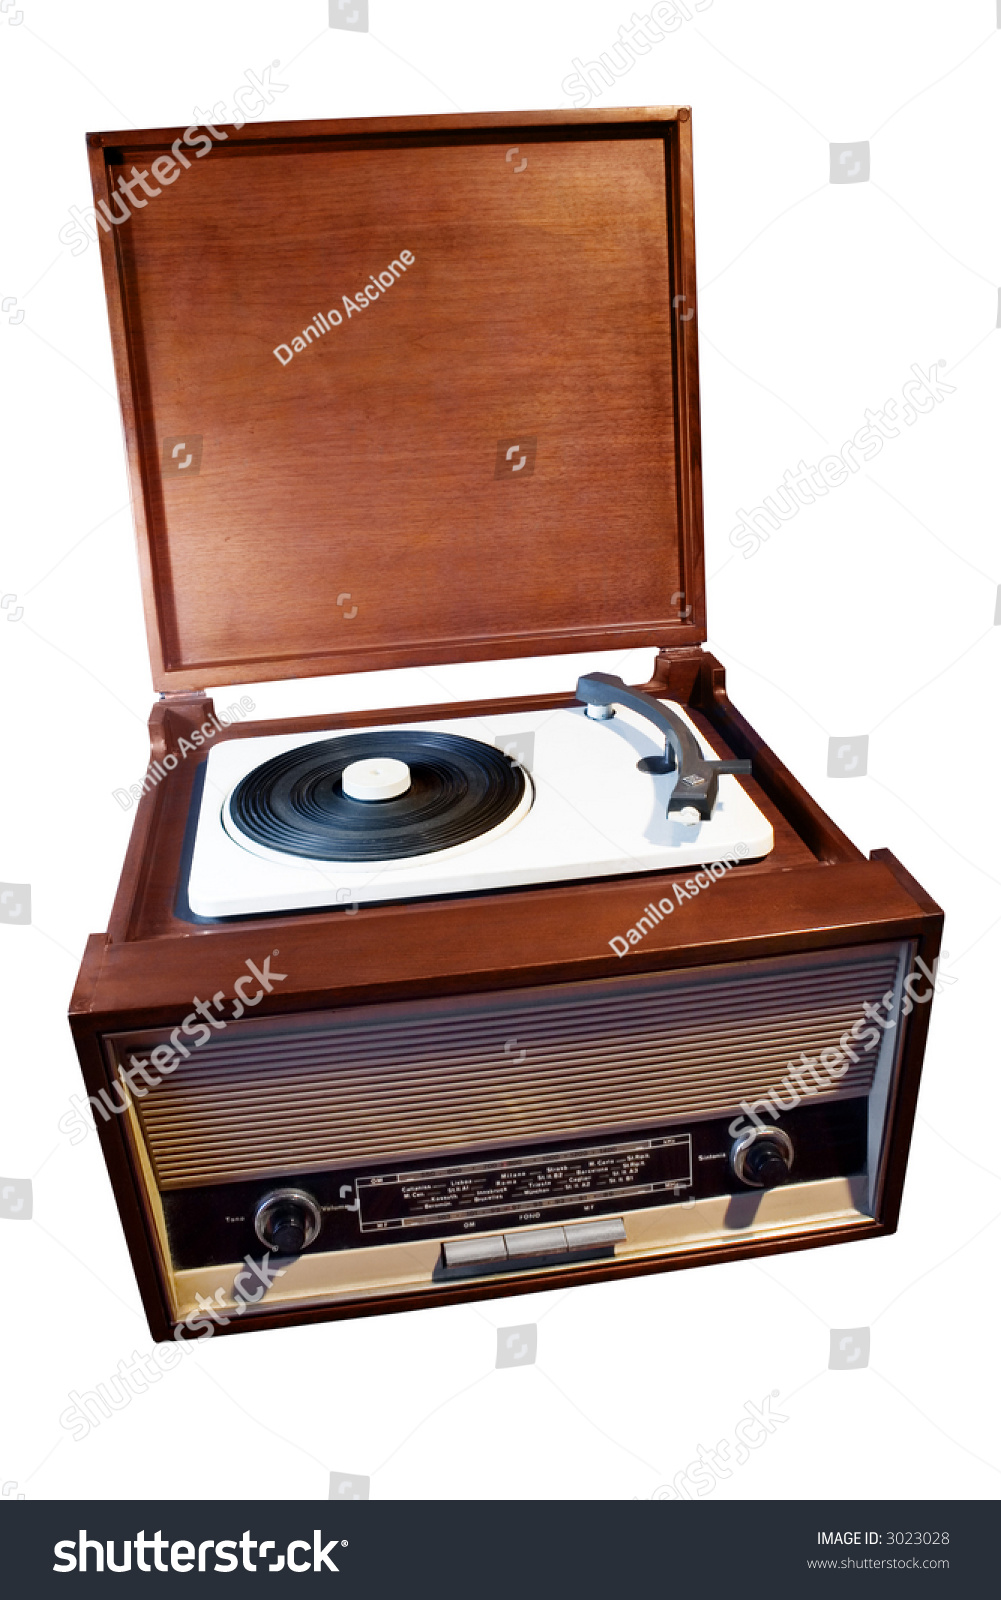 Old Fashioned Turntable In Room